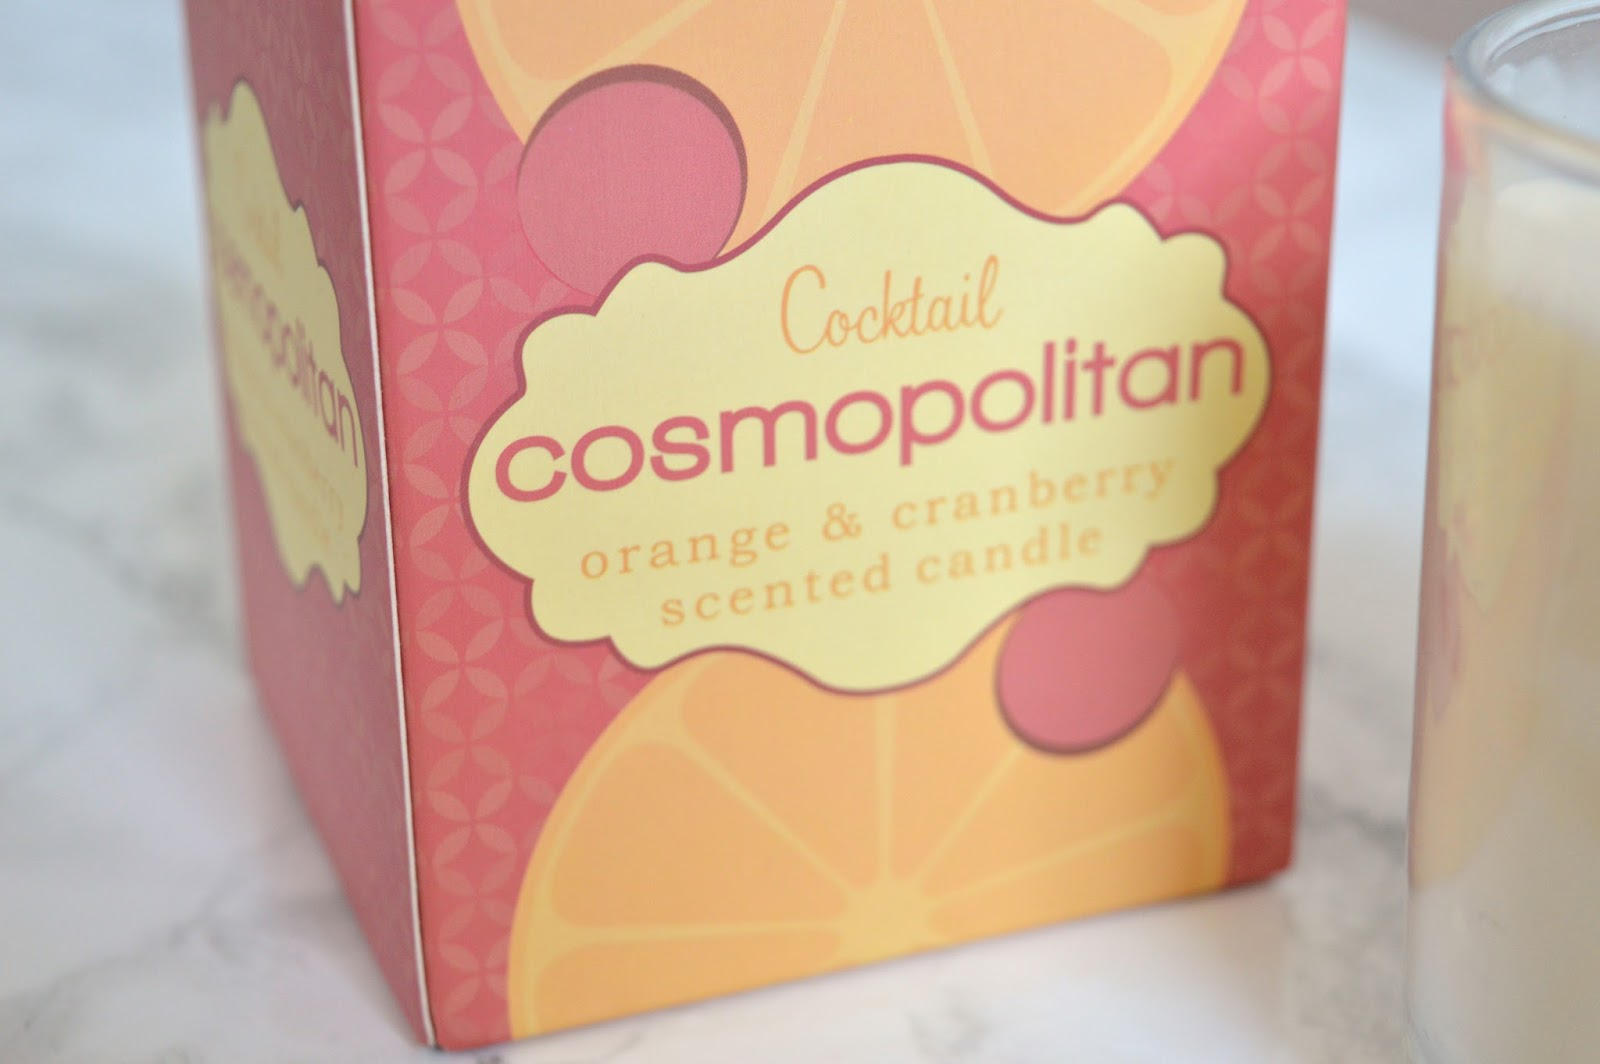 Cosmopolitan Cocktail Candle Packaging